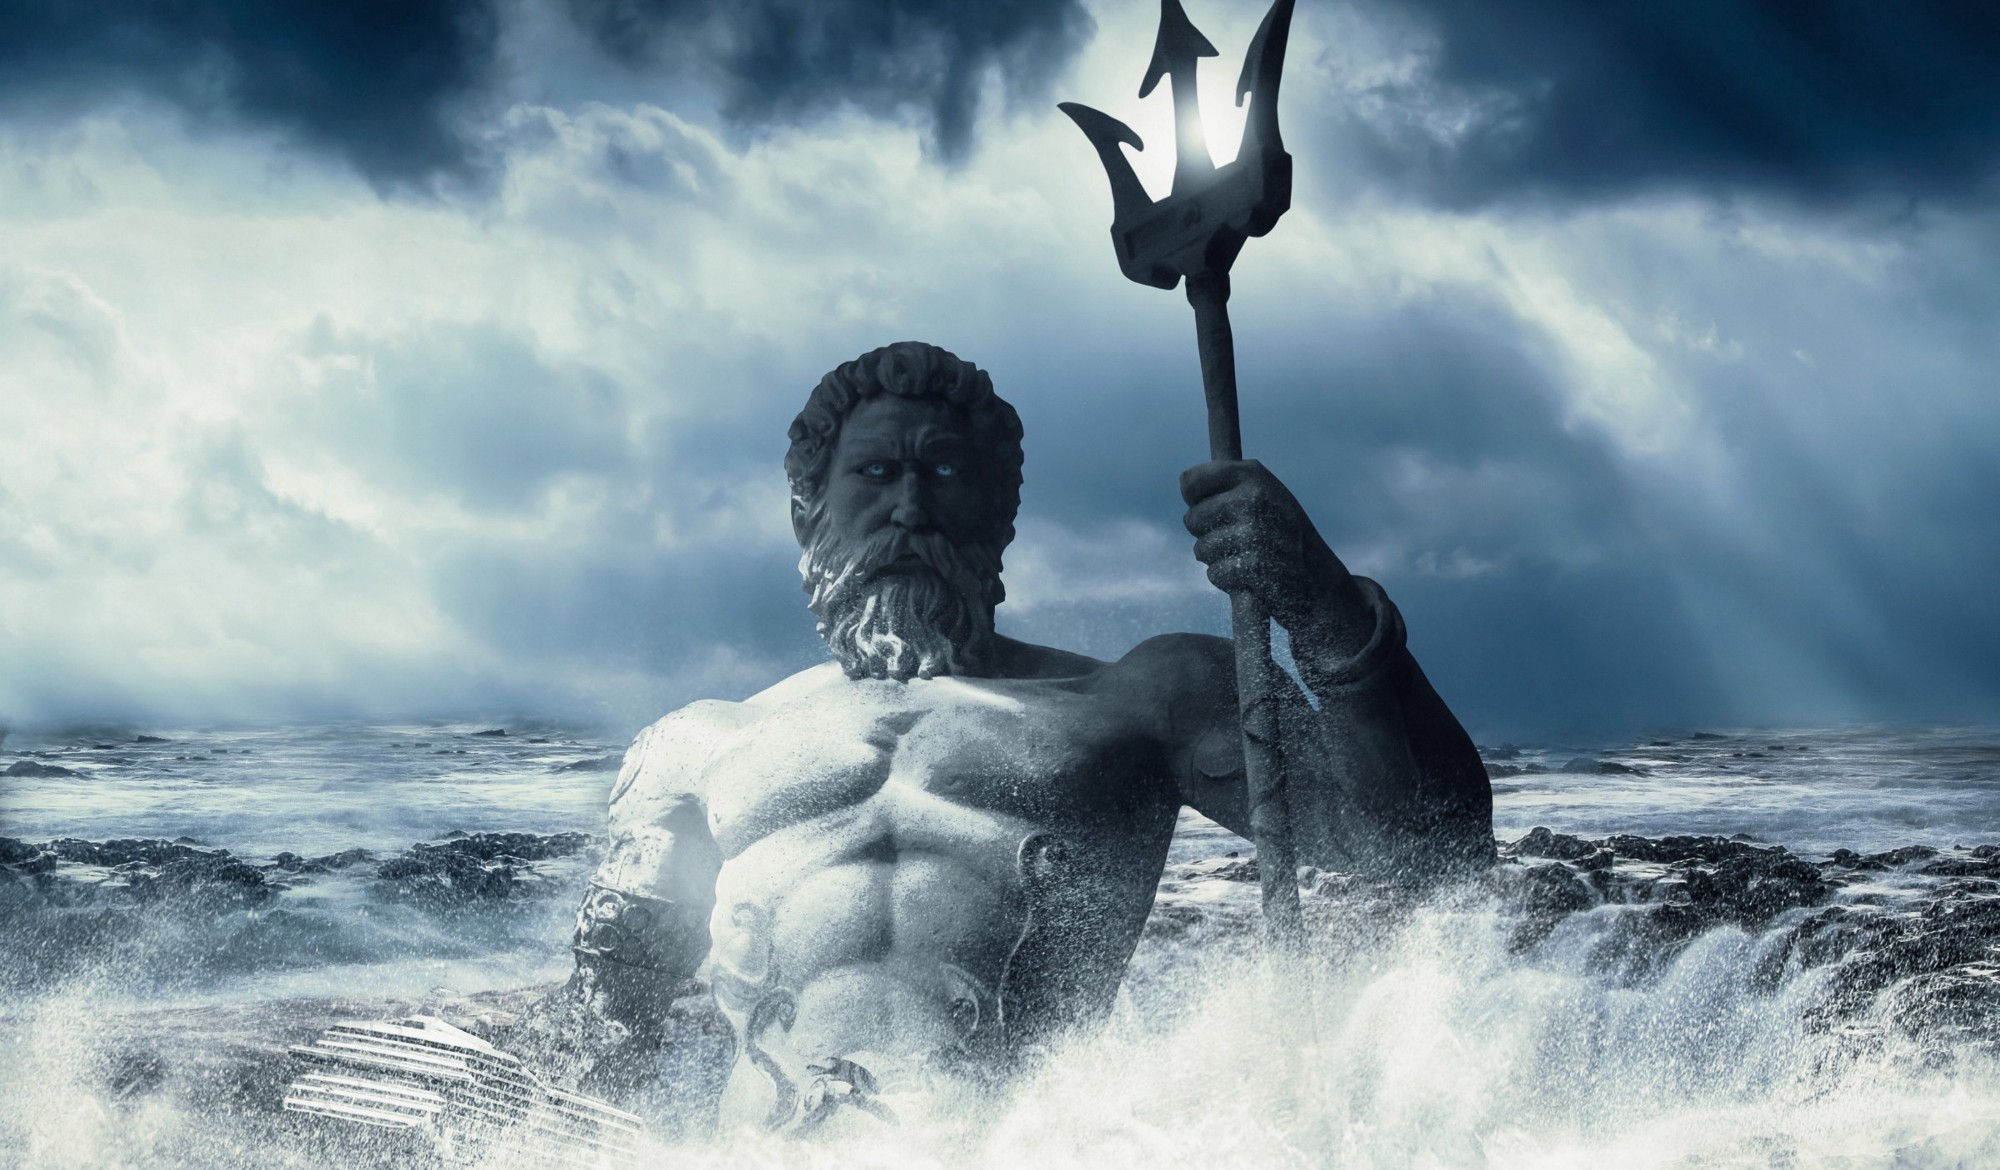 Sculpture of greek god poseidon in the backdrop of a stormy sea